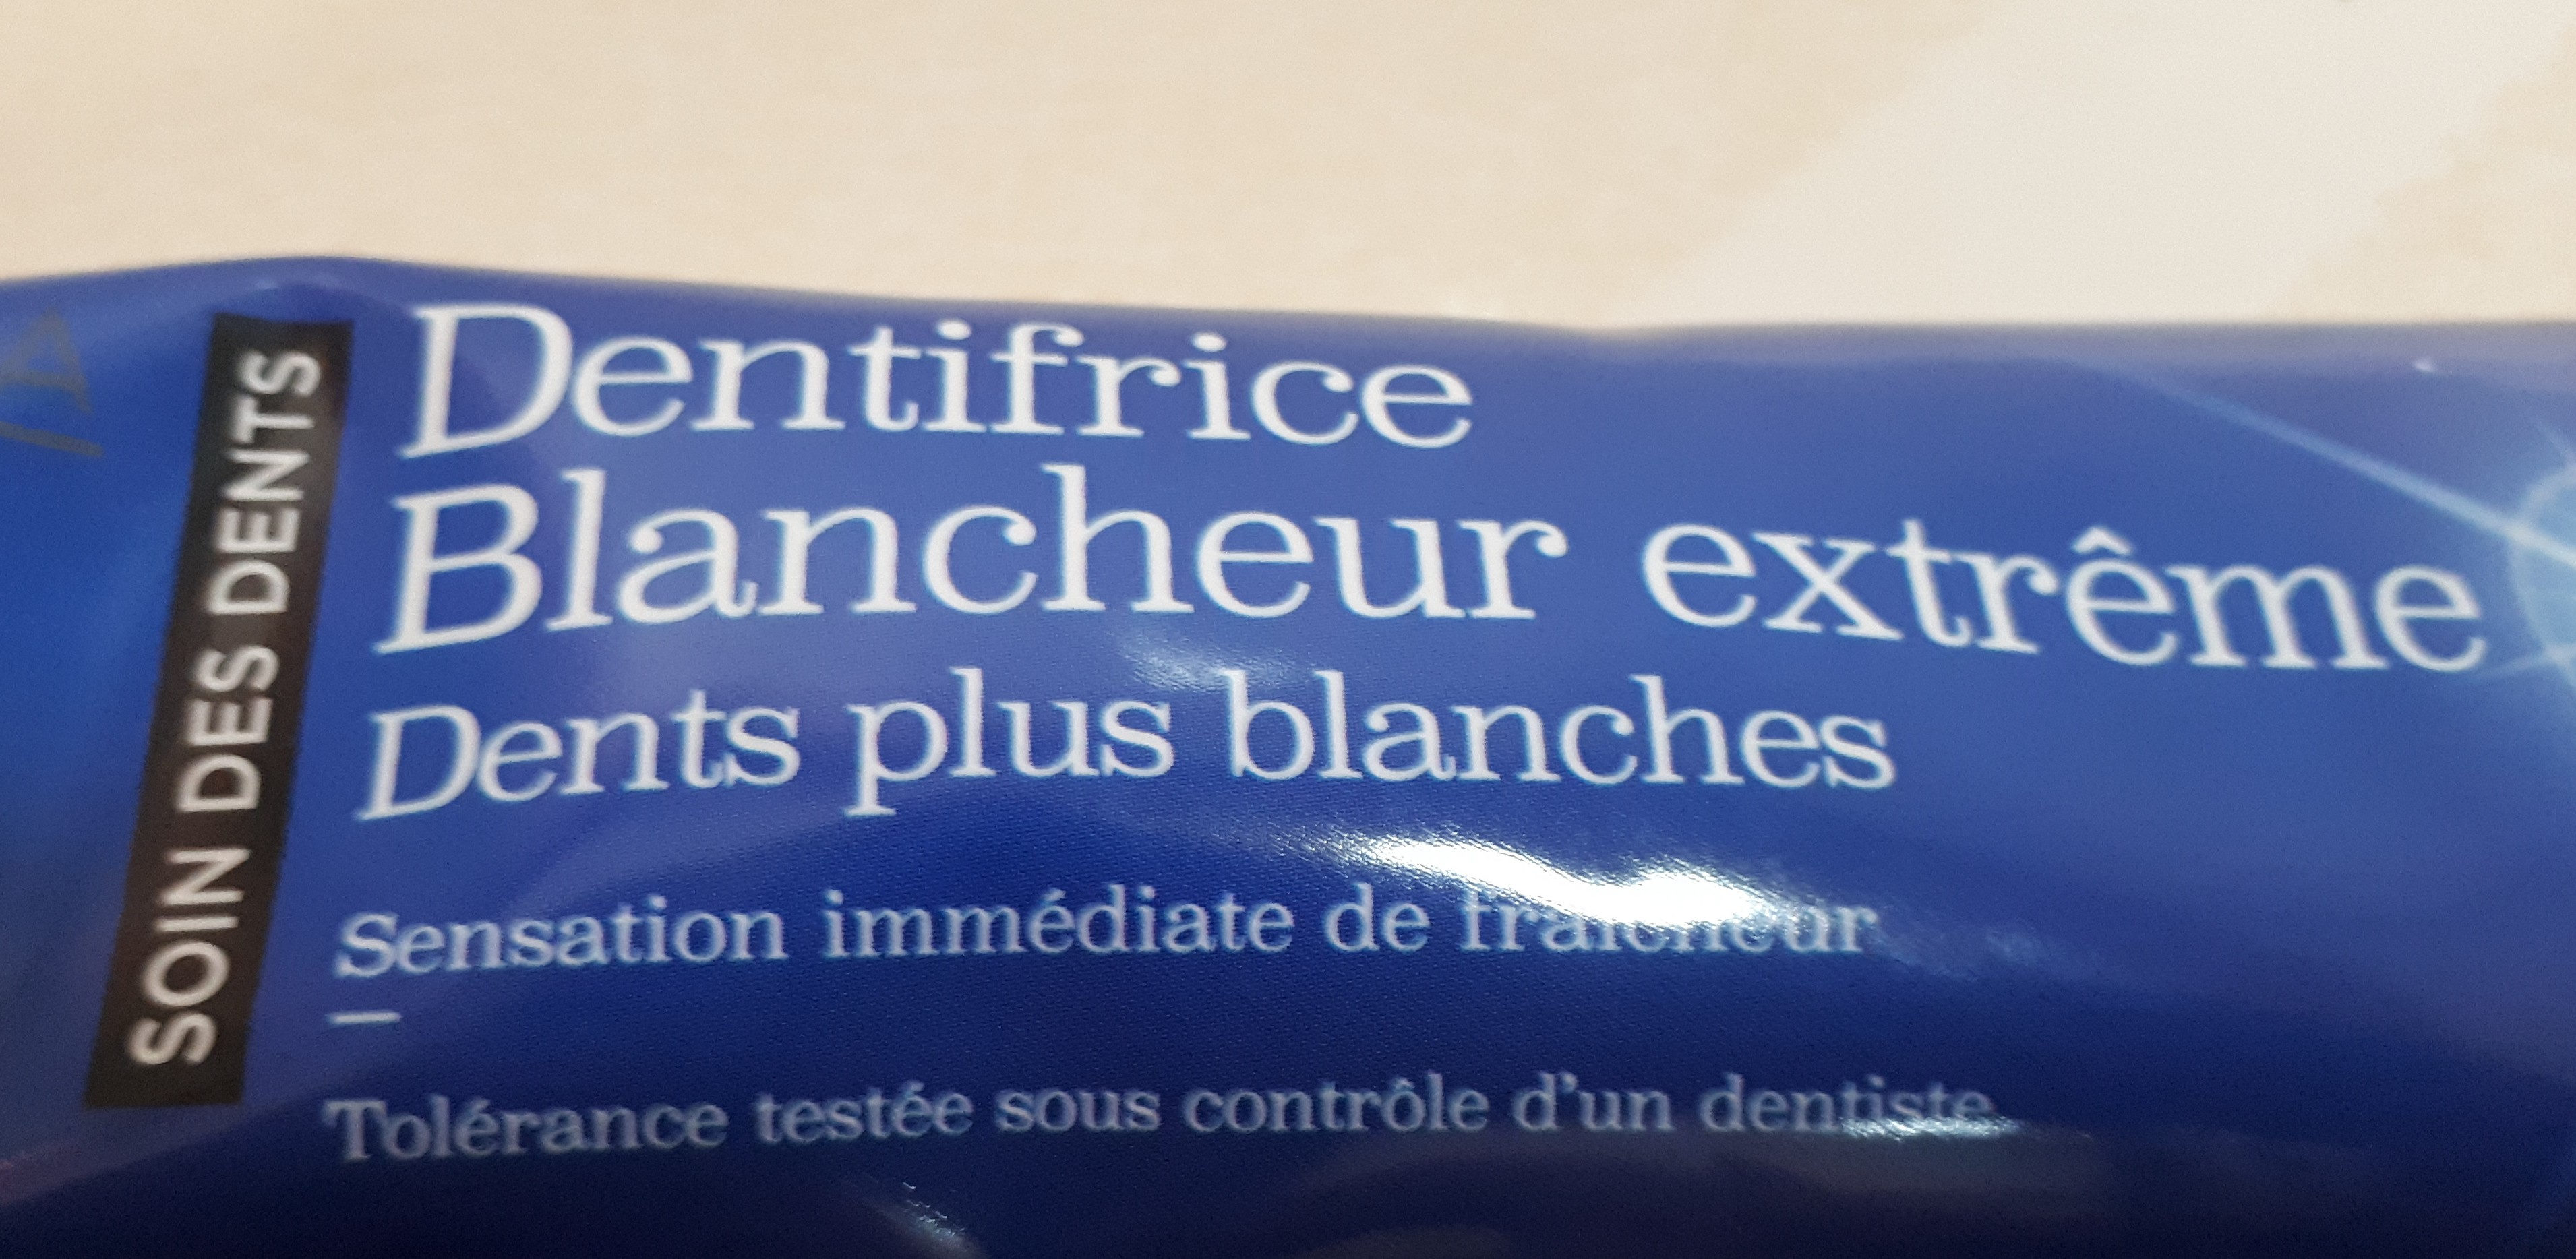 Dentifrice Blancheur extrême - Product - fr